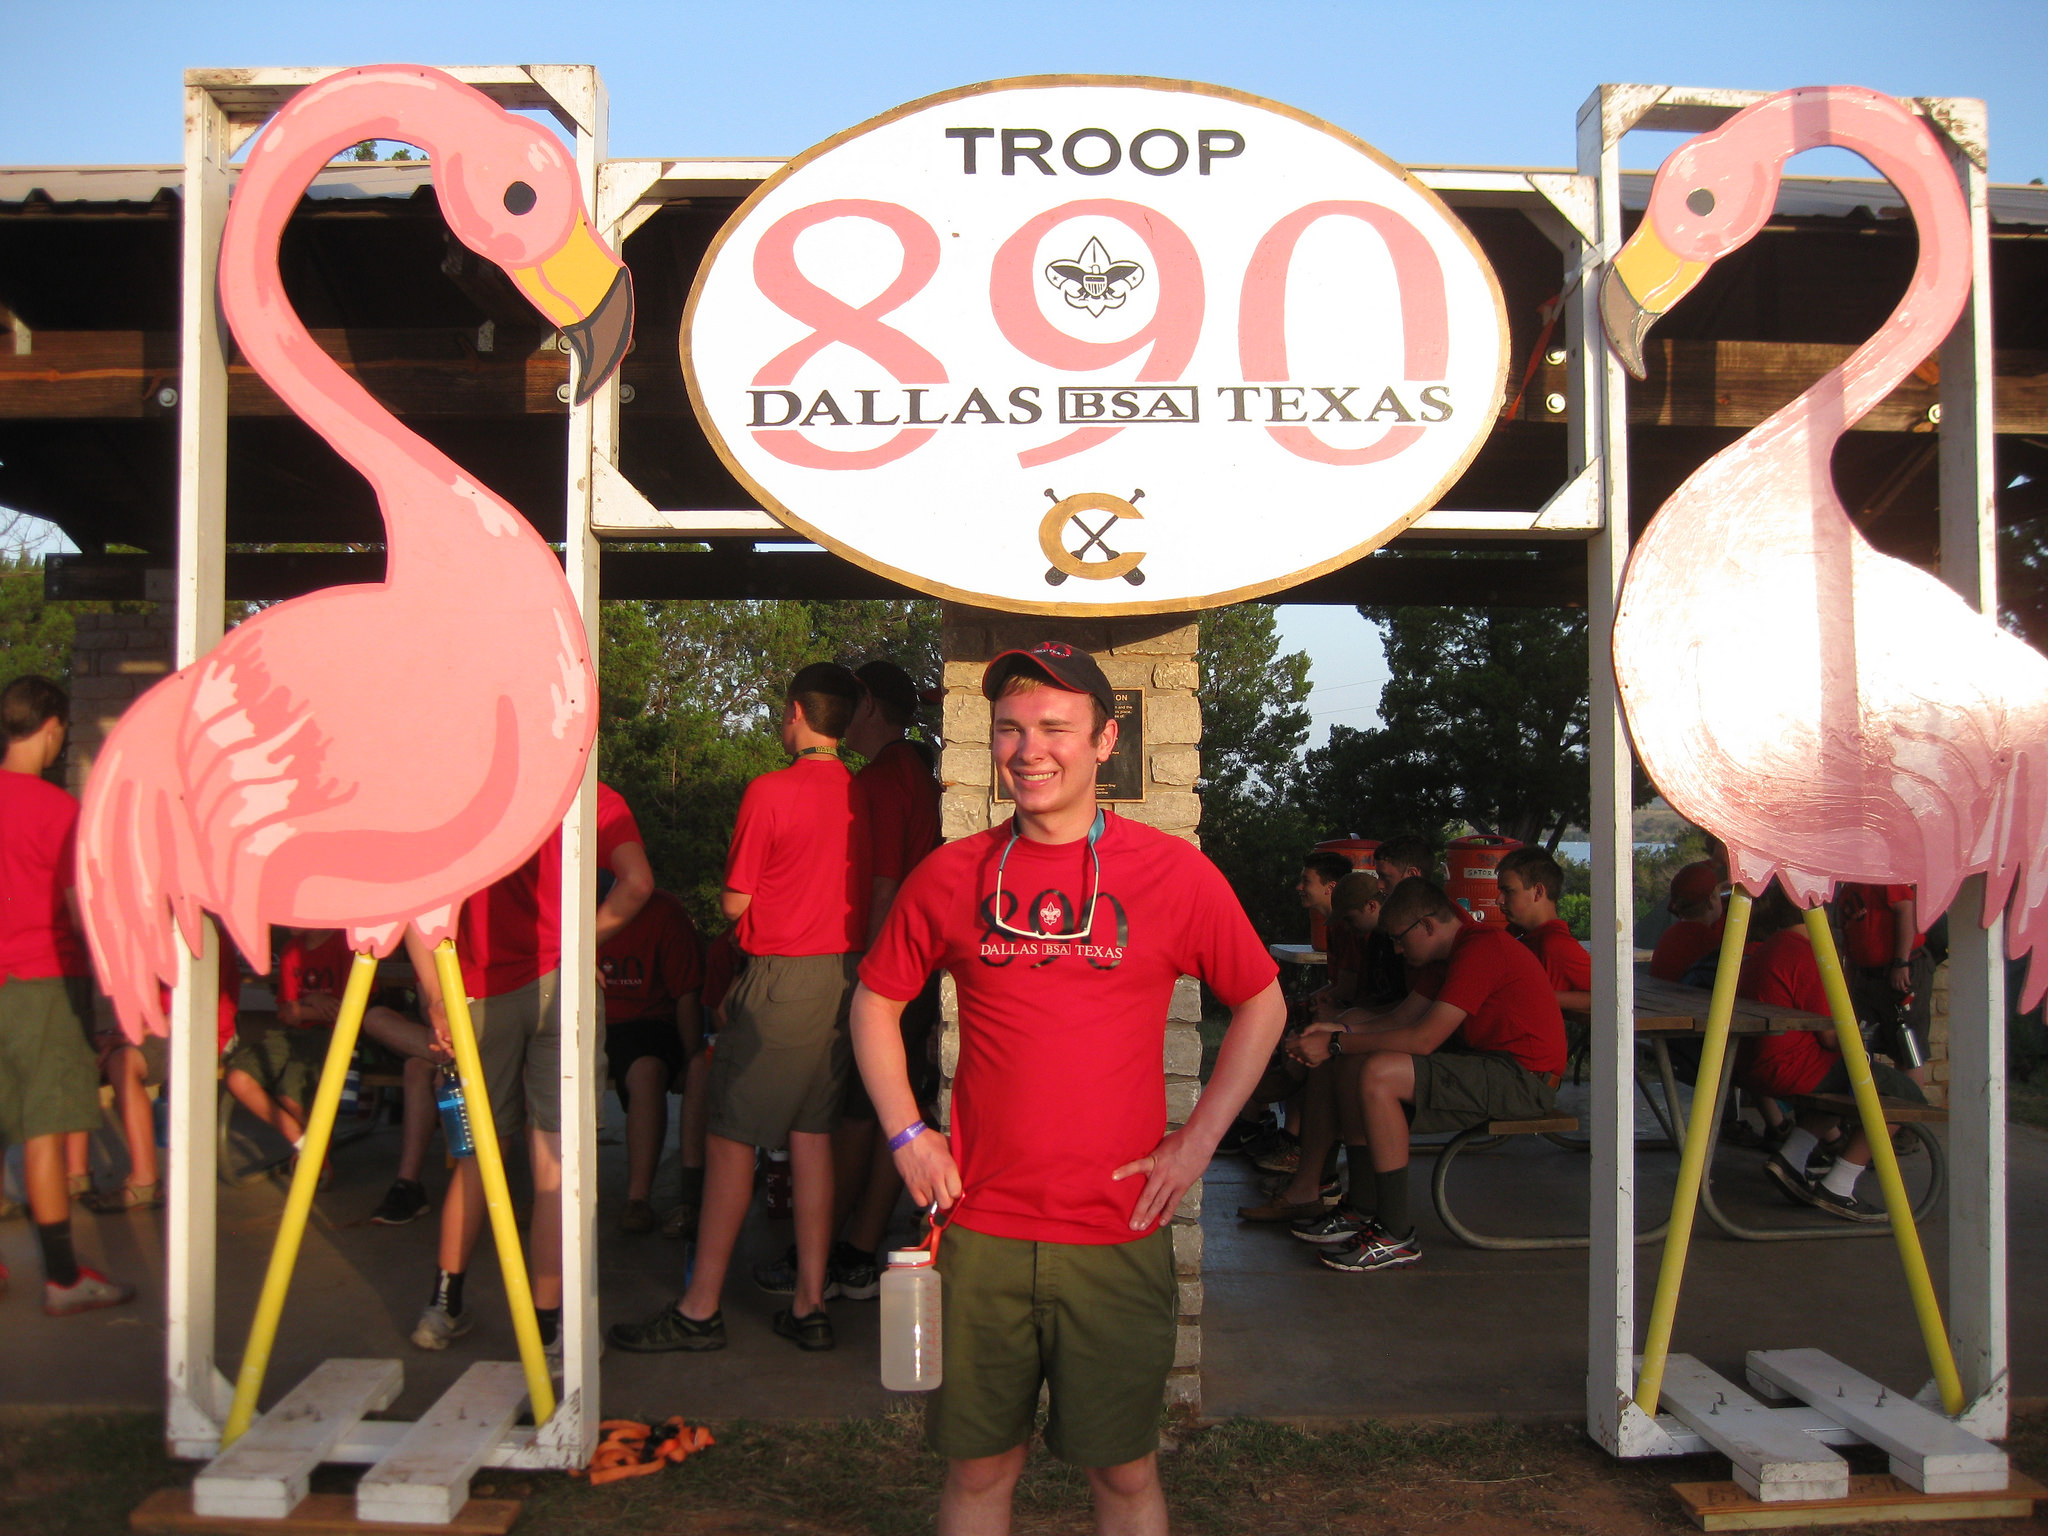 Our flamingo gateway at Indian Mound campsite. The smiling kid is Sam Hotz, SPL, Eagle Scout, and current student at Baylor University.